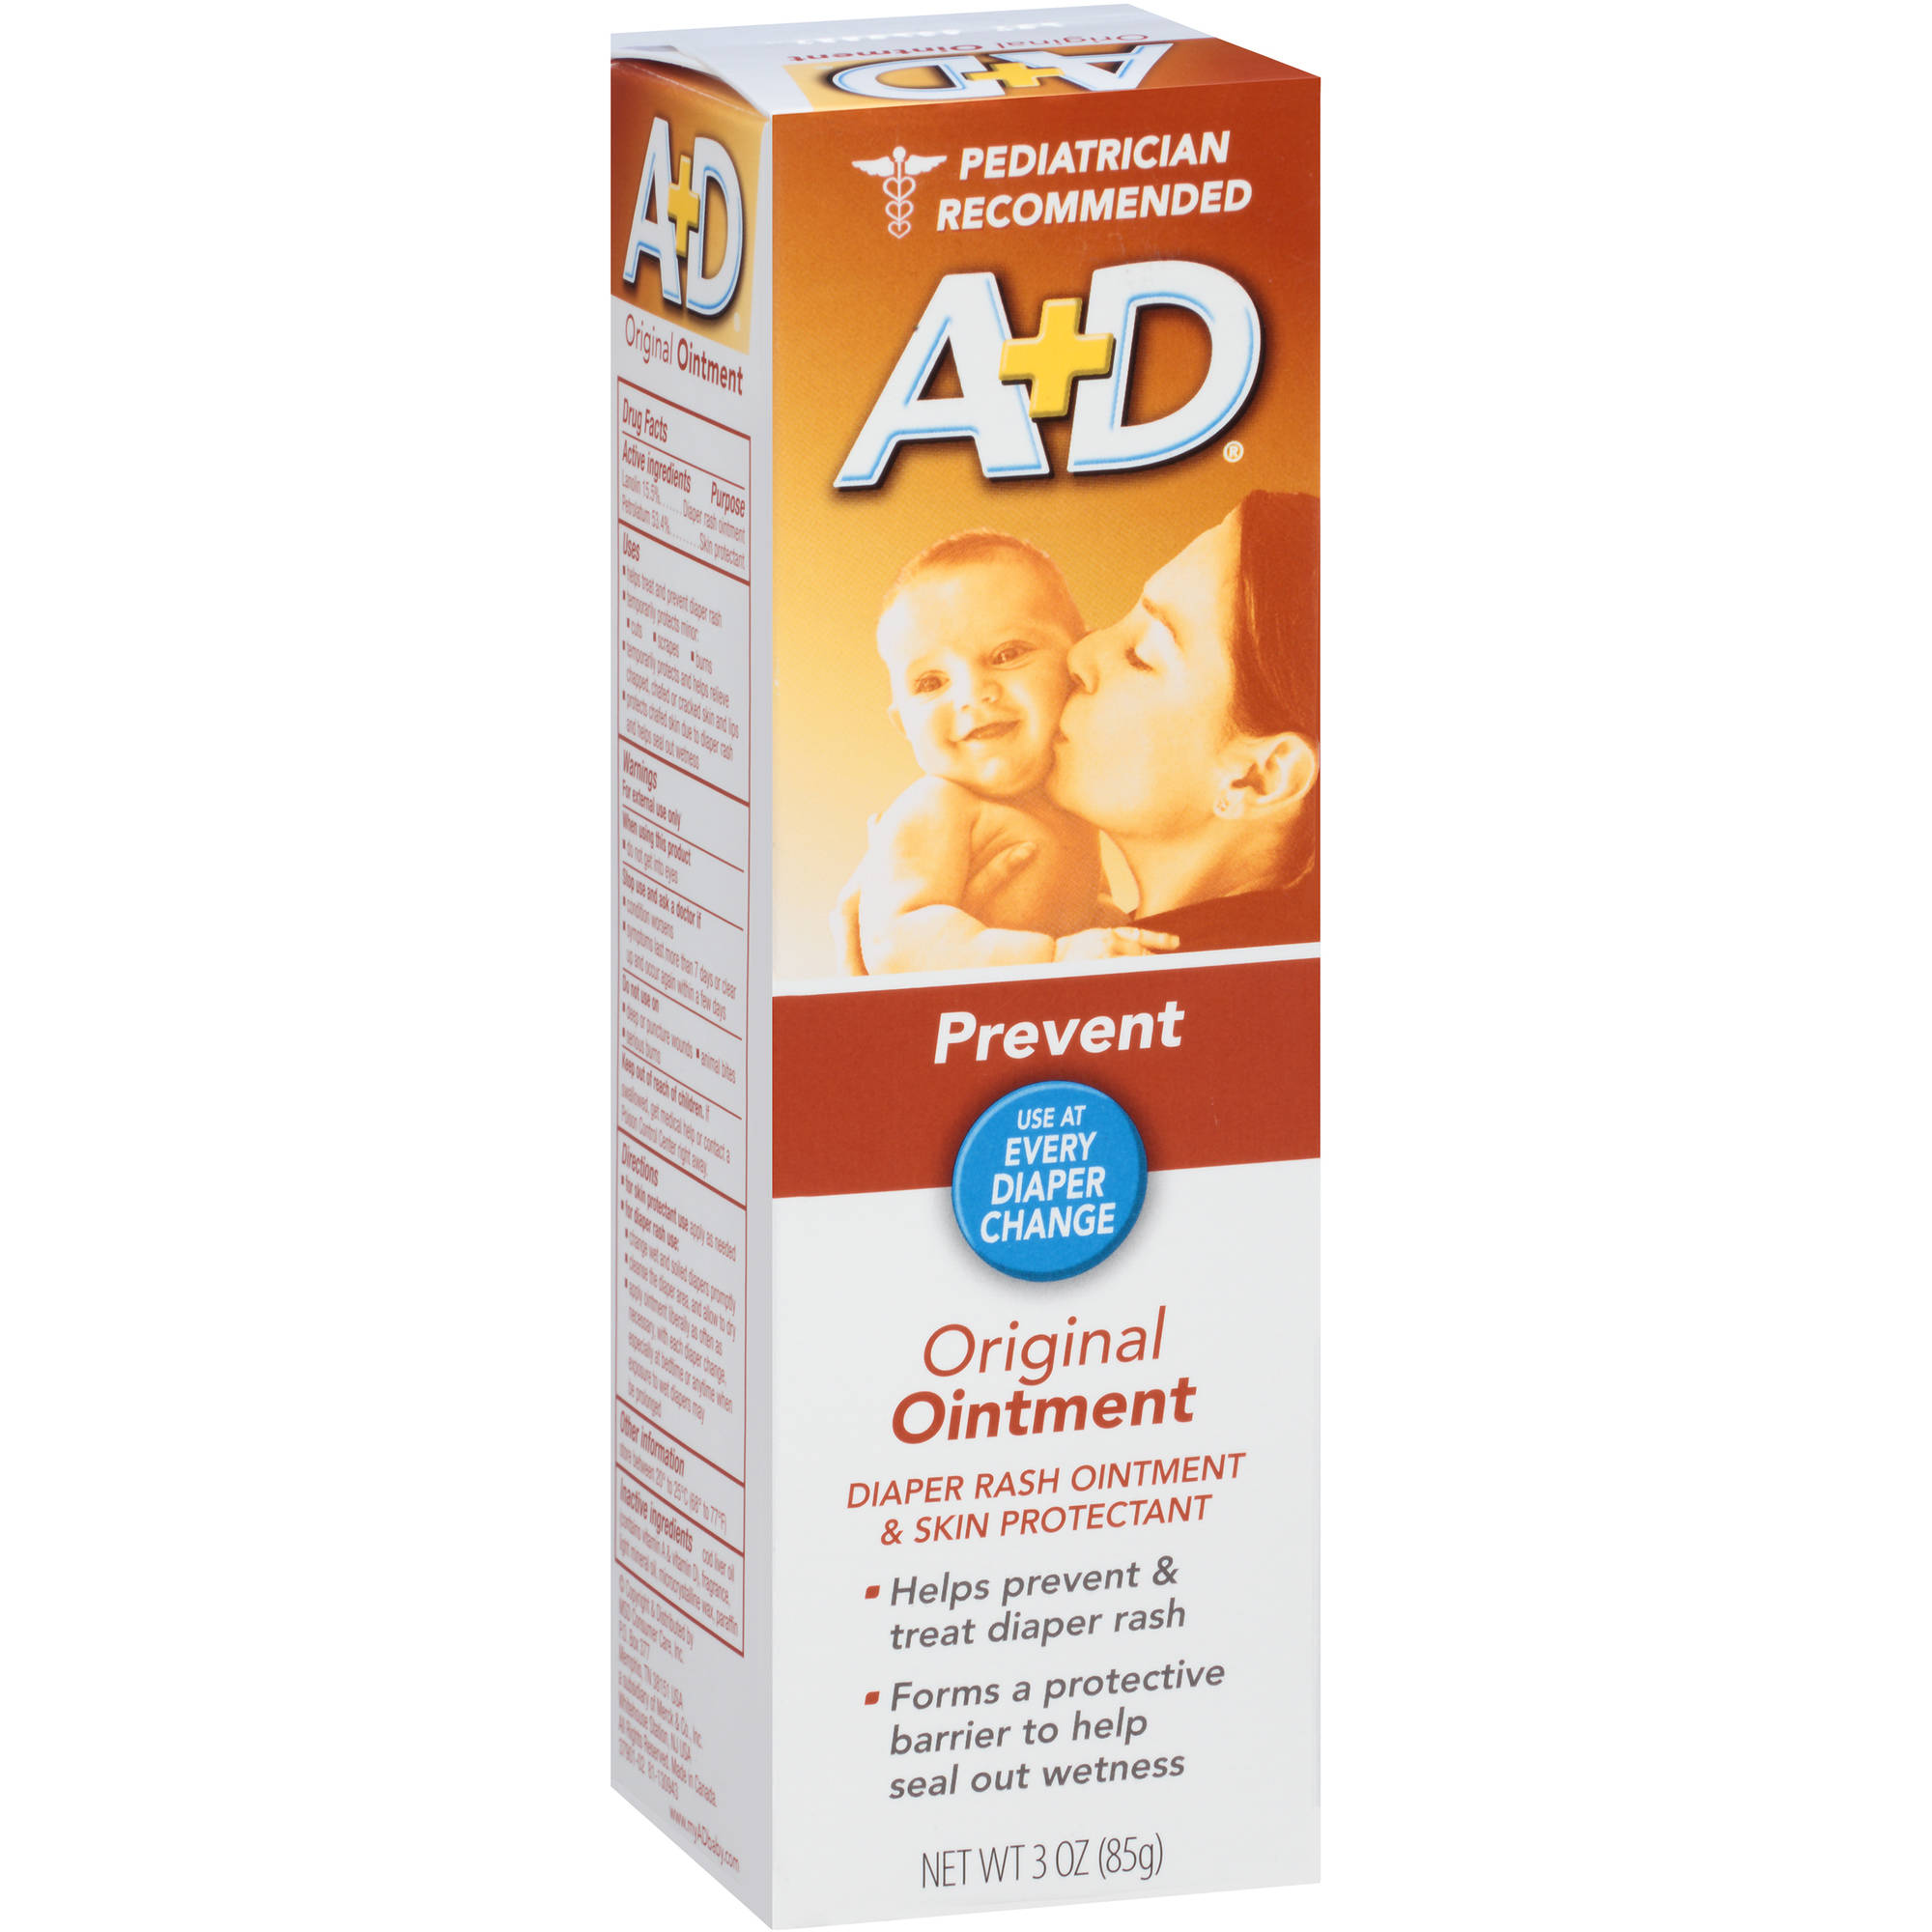 A+D Original Diaper Rash Ointment & Skin Protectant, 3 oz